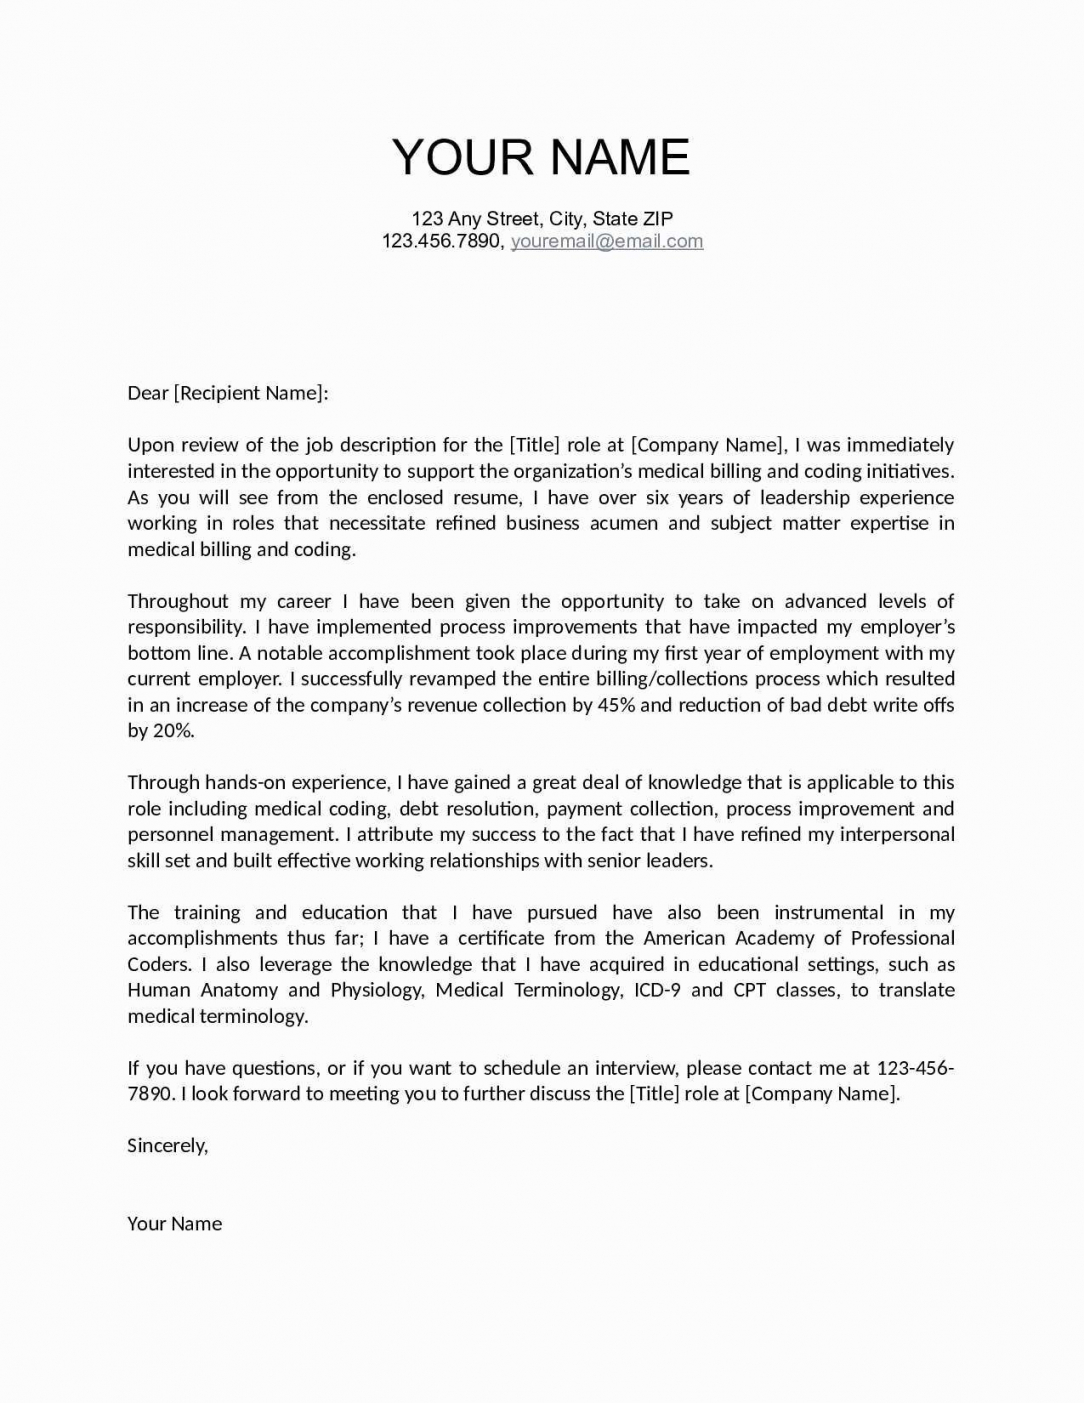 template letter for proof of debt new proof debt letter template proof of debt letter template